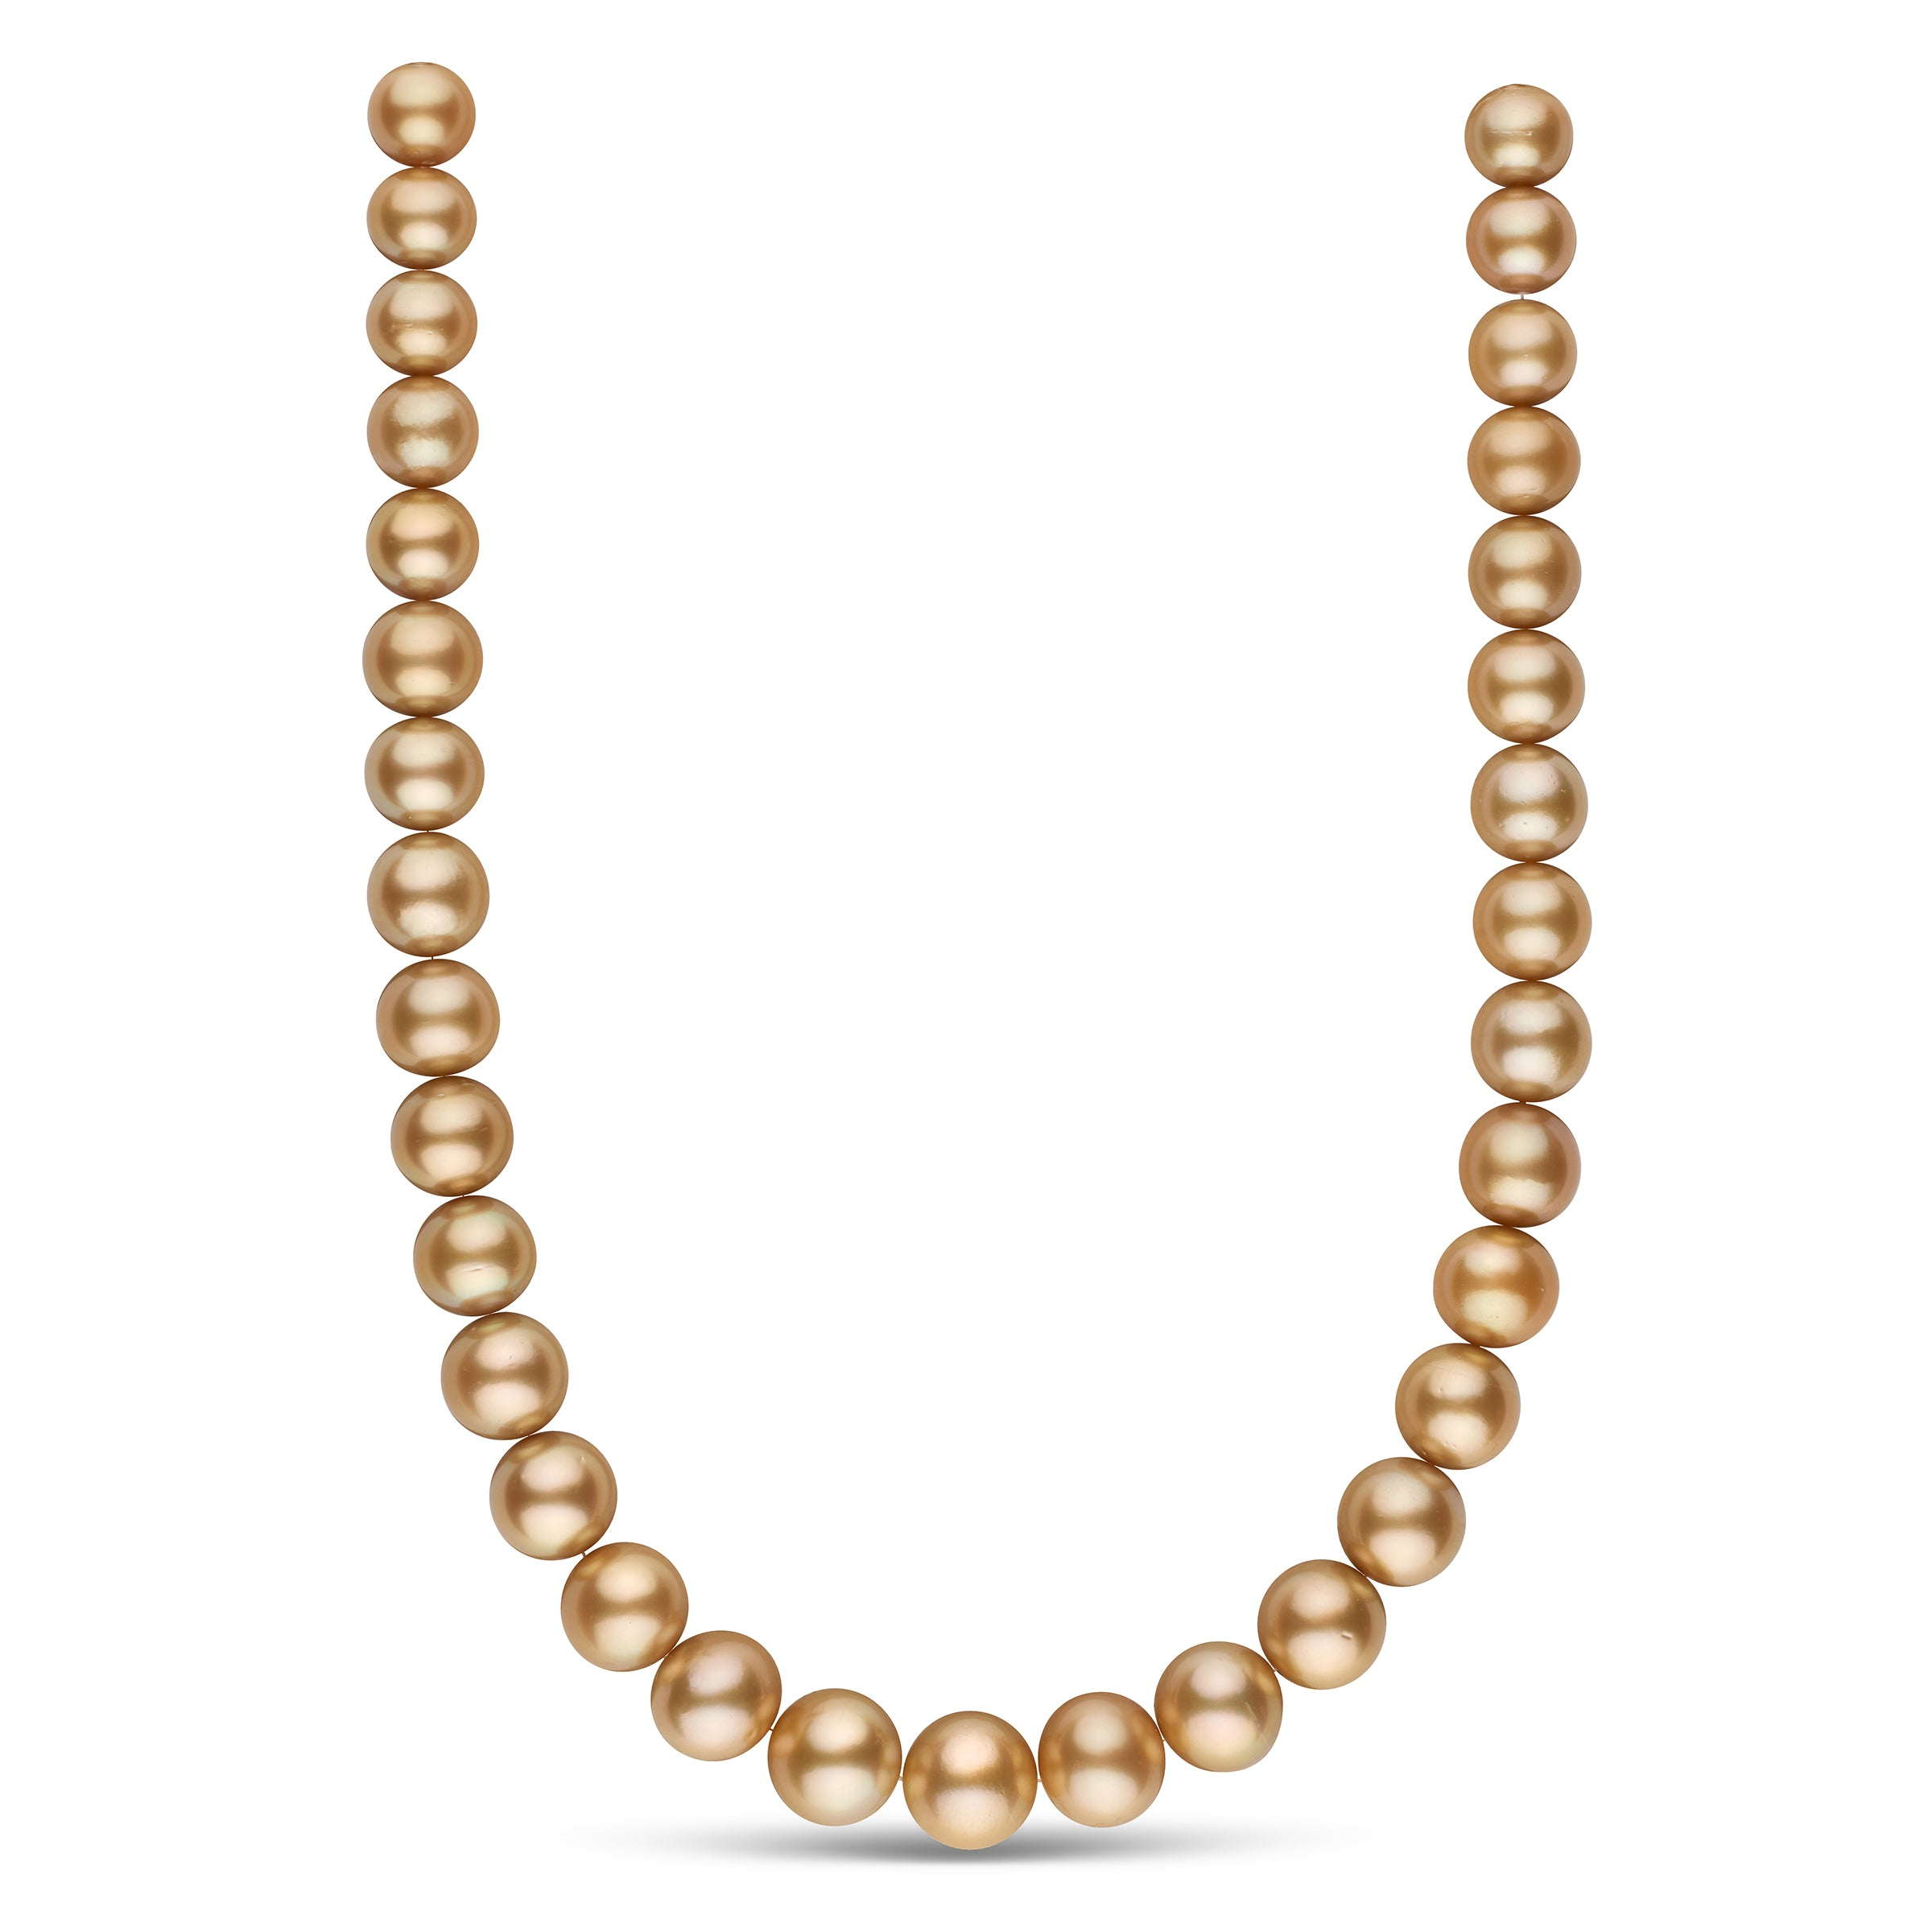 The Silver Linings Playbook Golden South Sea Pearl Necklace